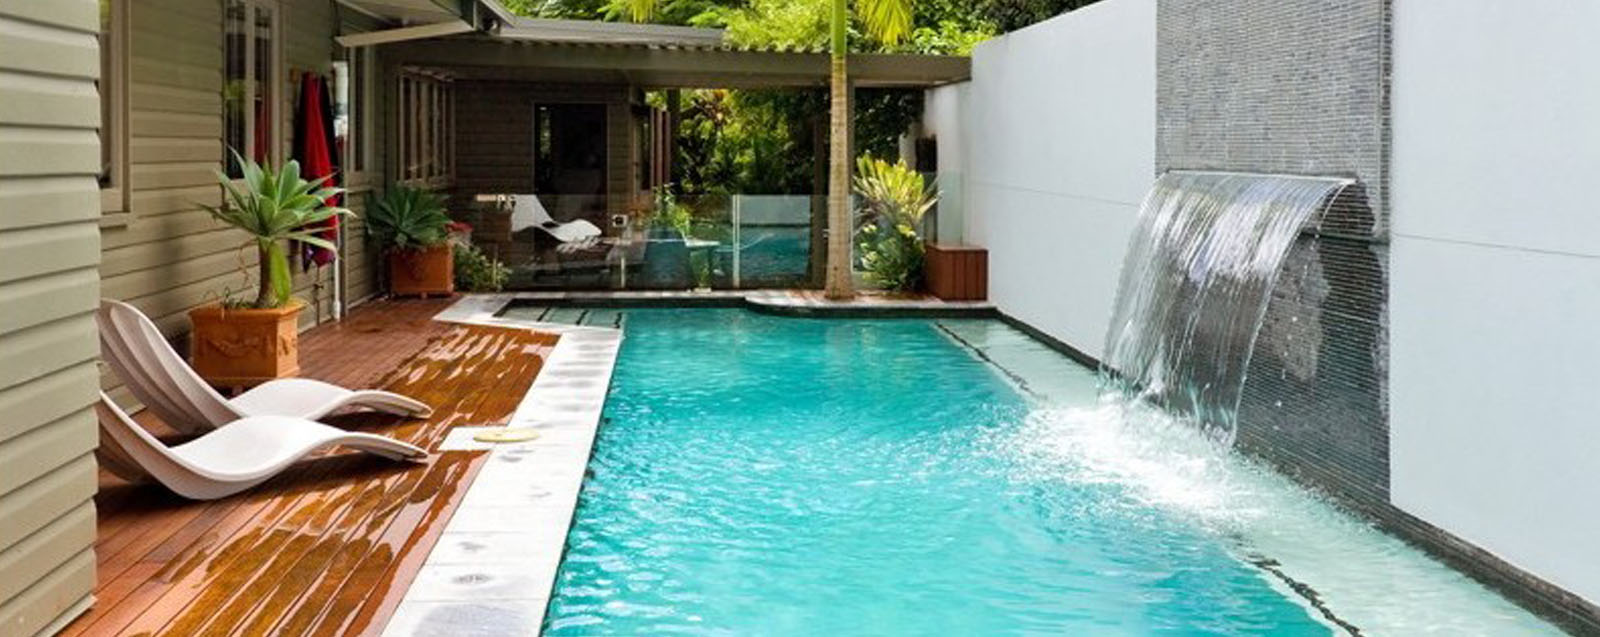 Blosssoms Associates Landscape And Swimming Pool